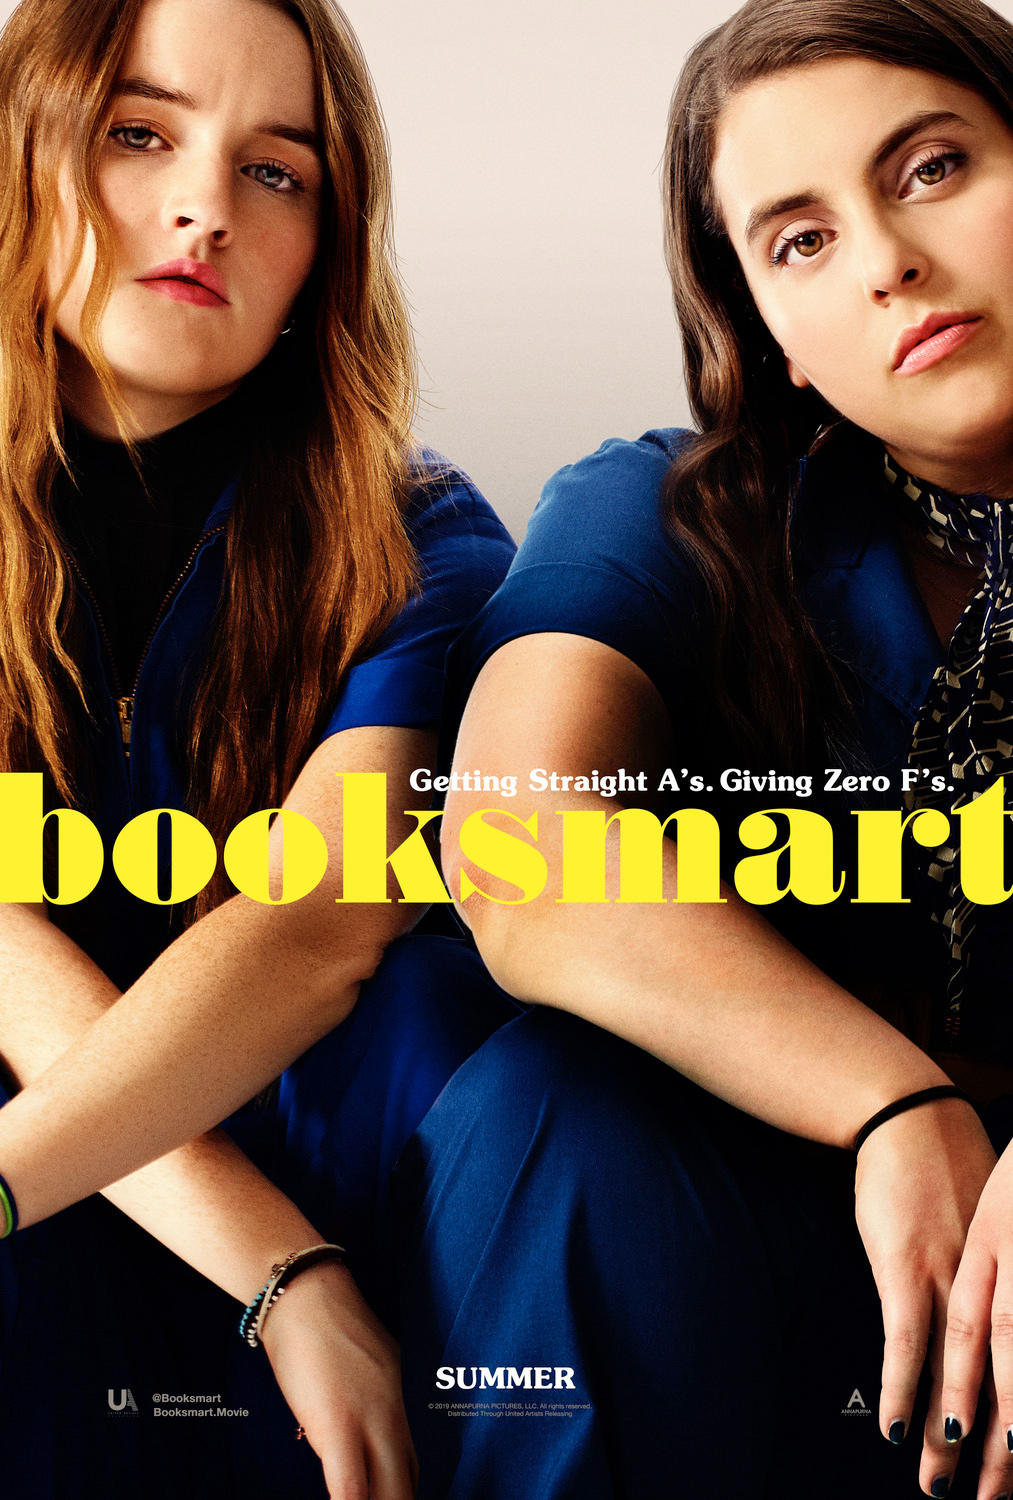 Booksmart - May 24th, 2019